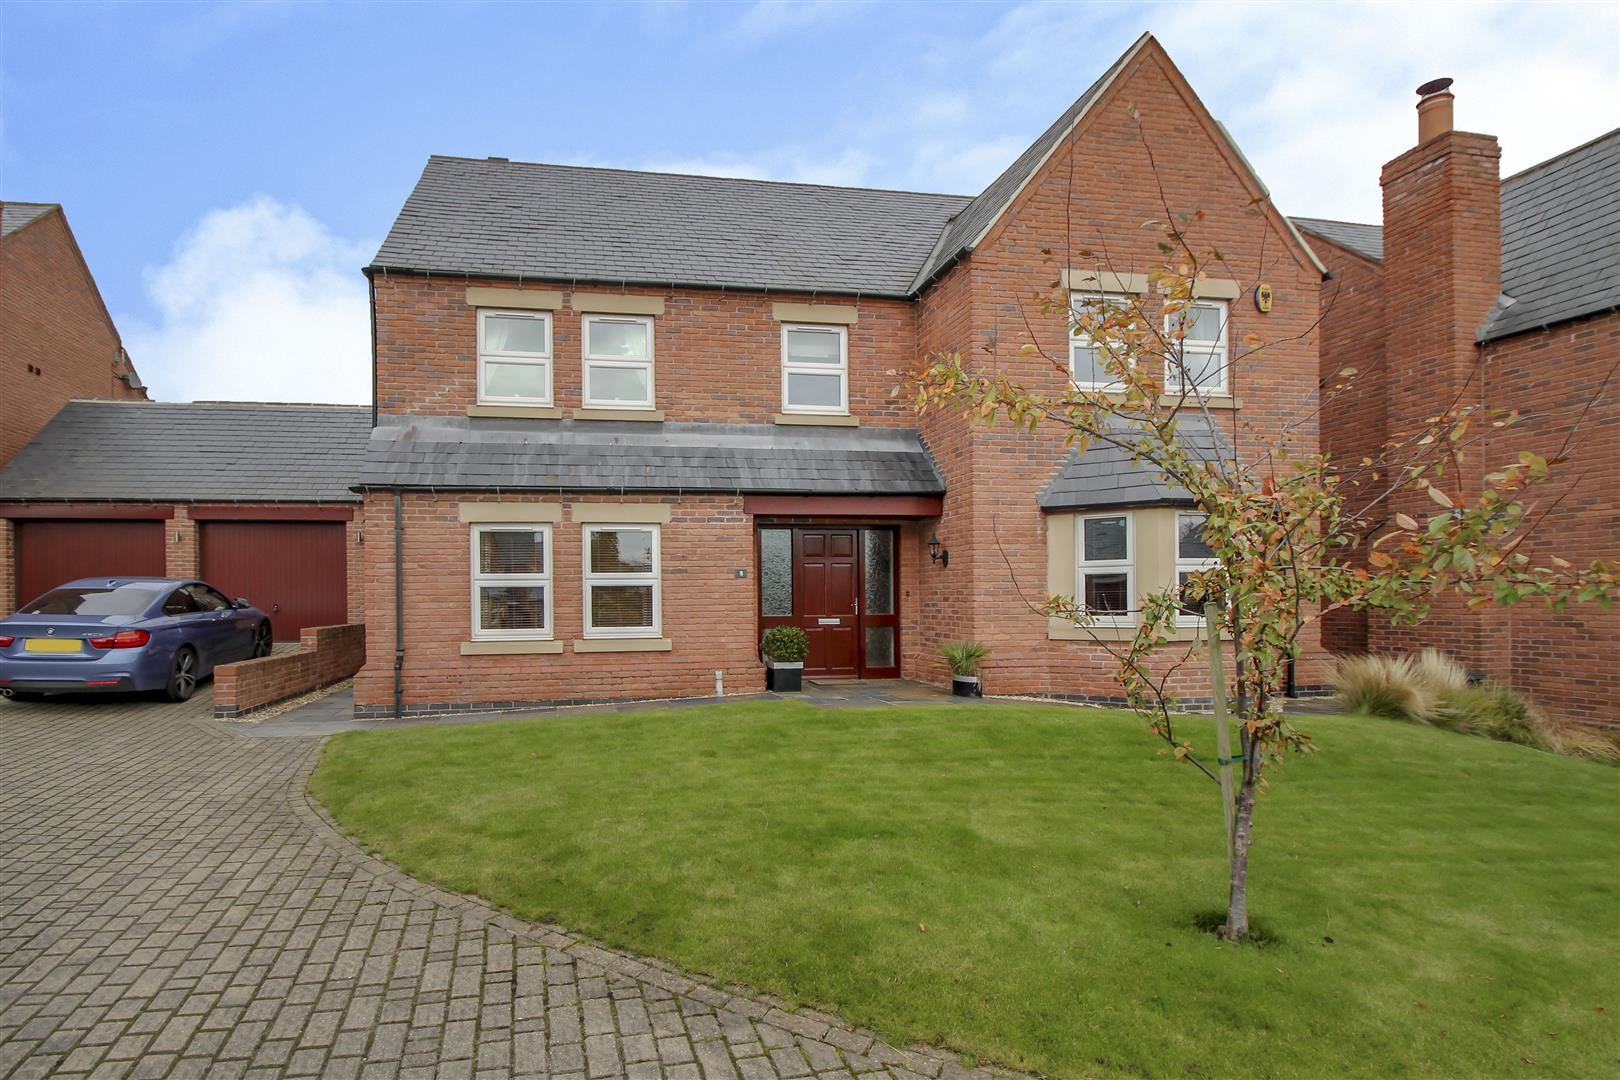 5 Bedrooms Detached House for sale in Orton Fields, Bramcote, Nottingham